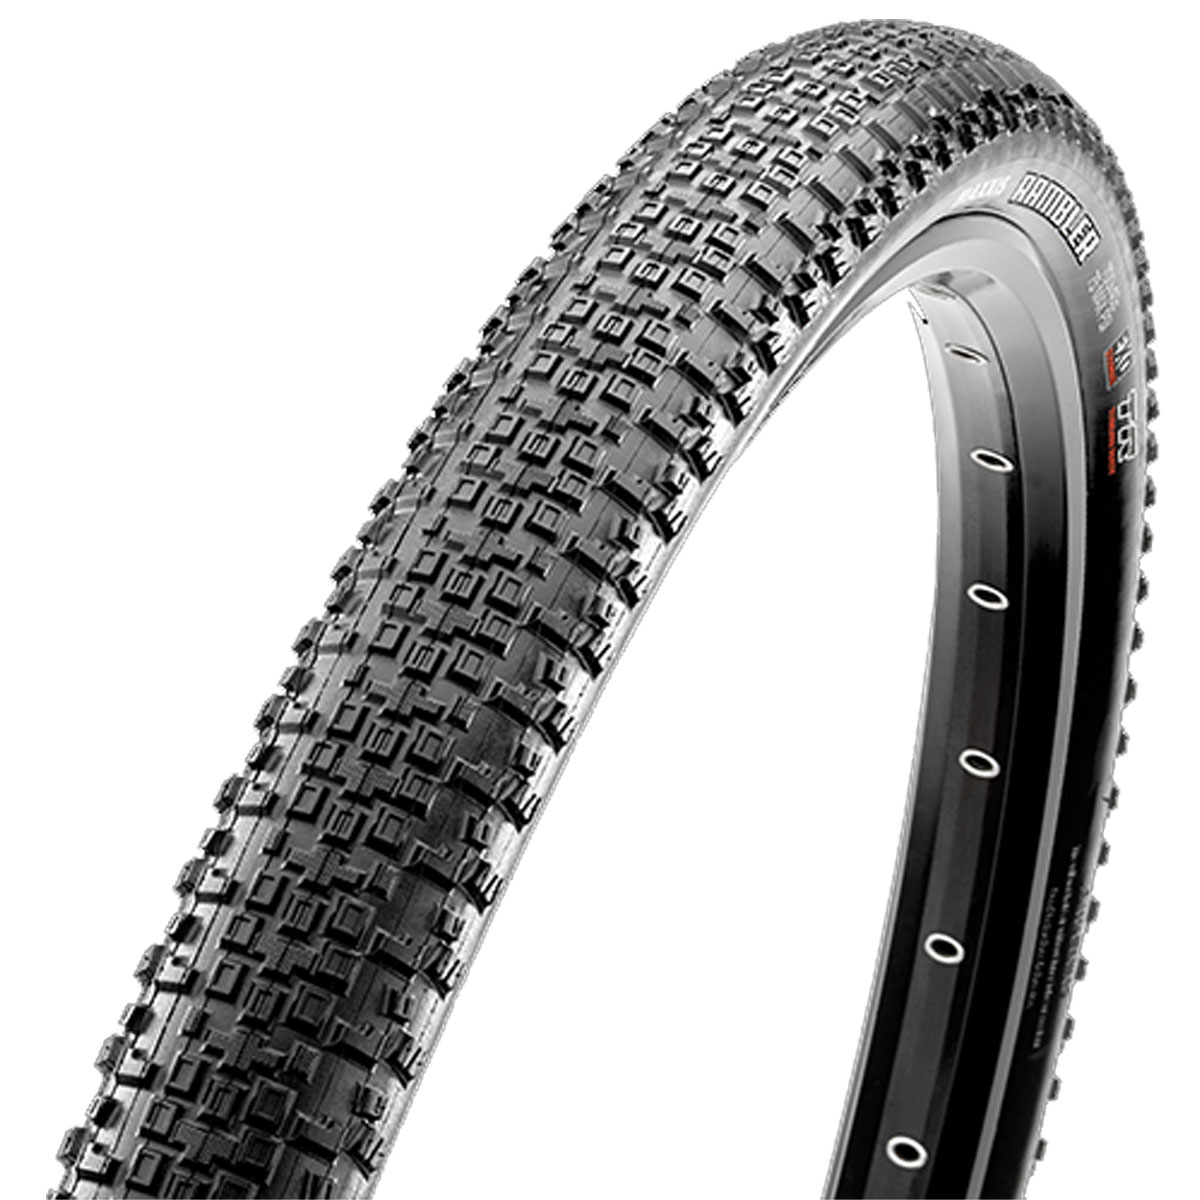 Maxxis Rambler Dual Compound SS Tubeless Ready Carbon Fiber Folding Bead 700c Knobby Bicycle Tire - TB96268100